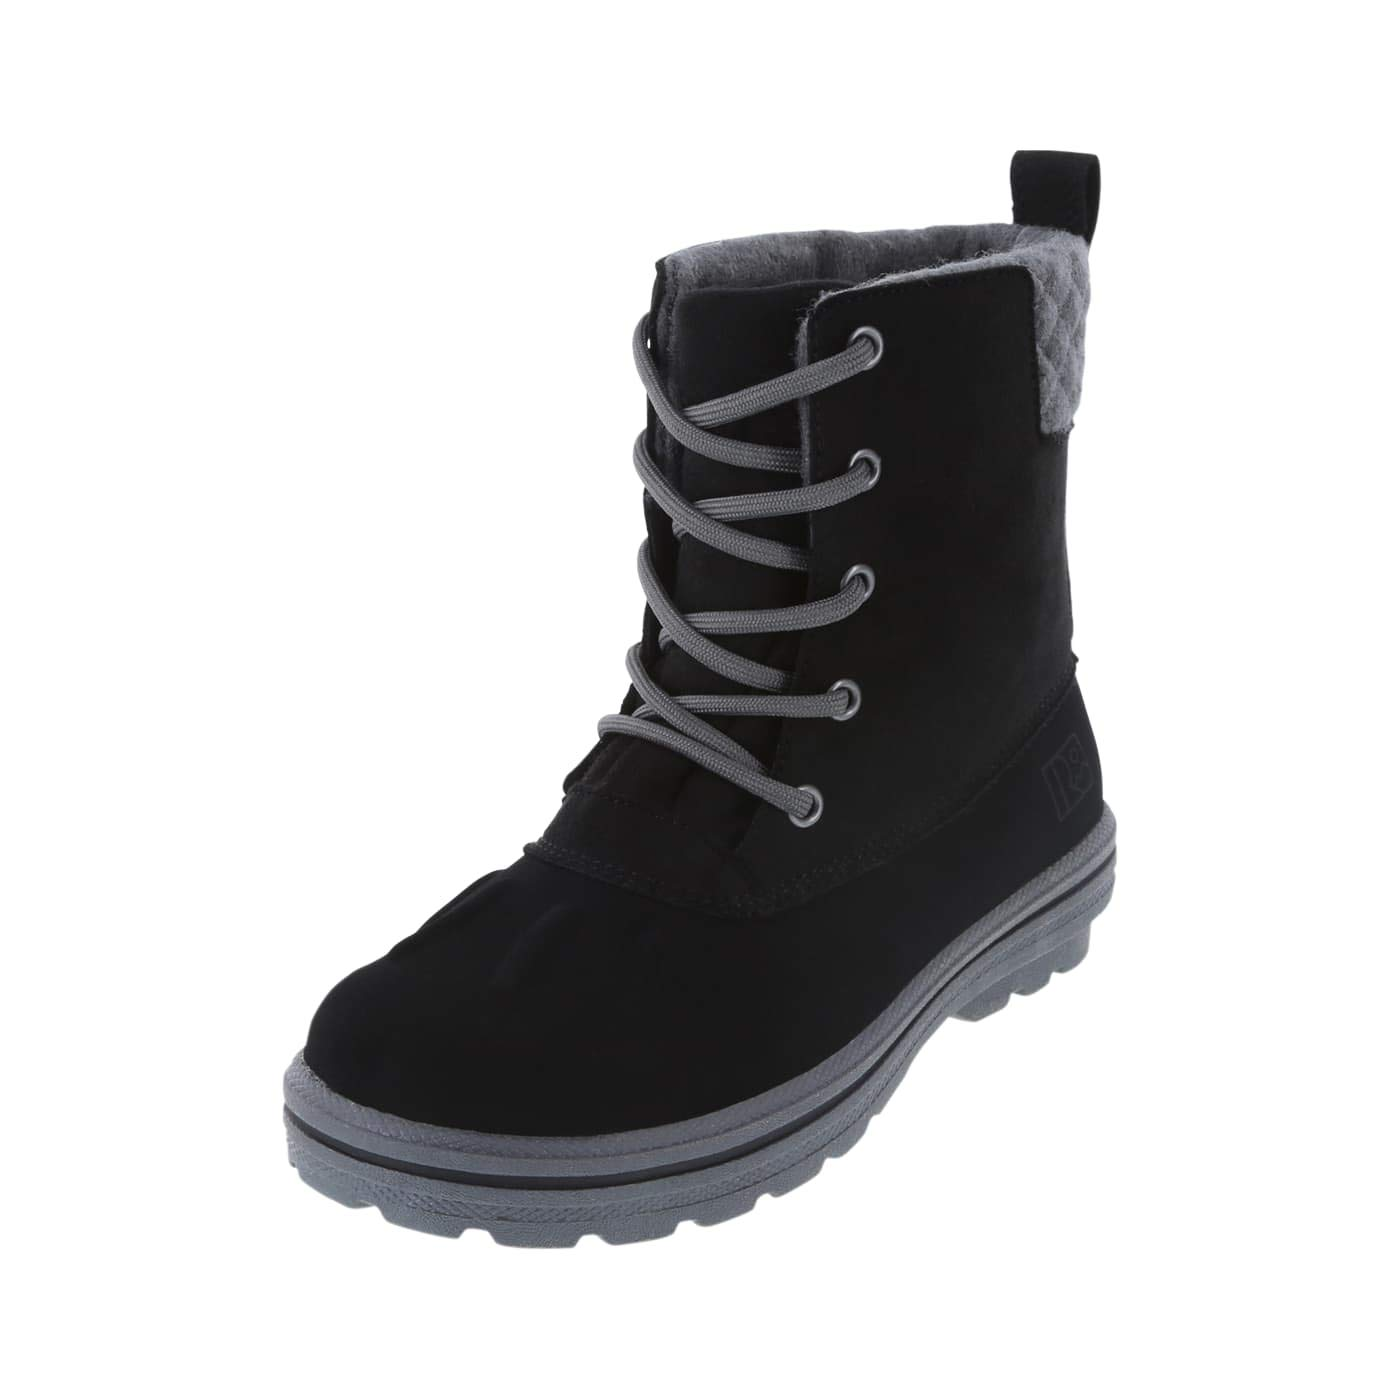 Rugged Outback Boys Gordon 10 Duck Boots 078999-Parent